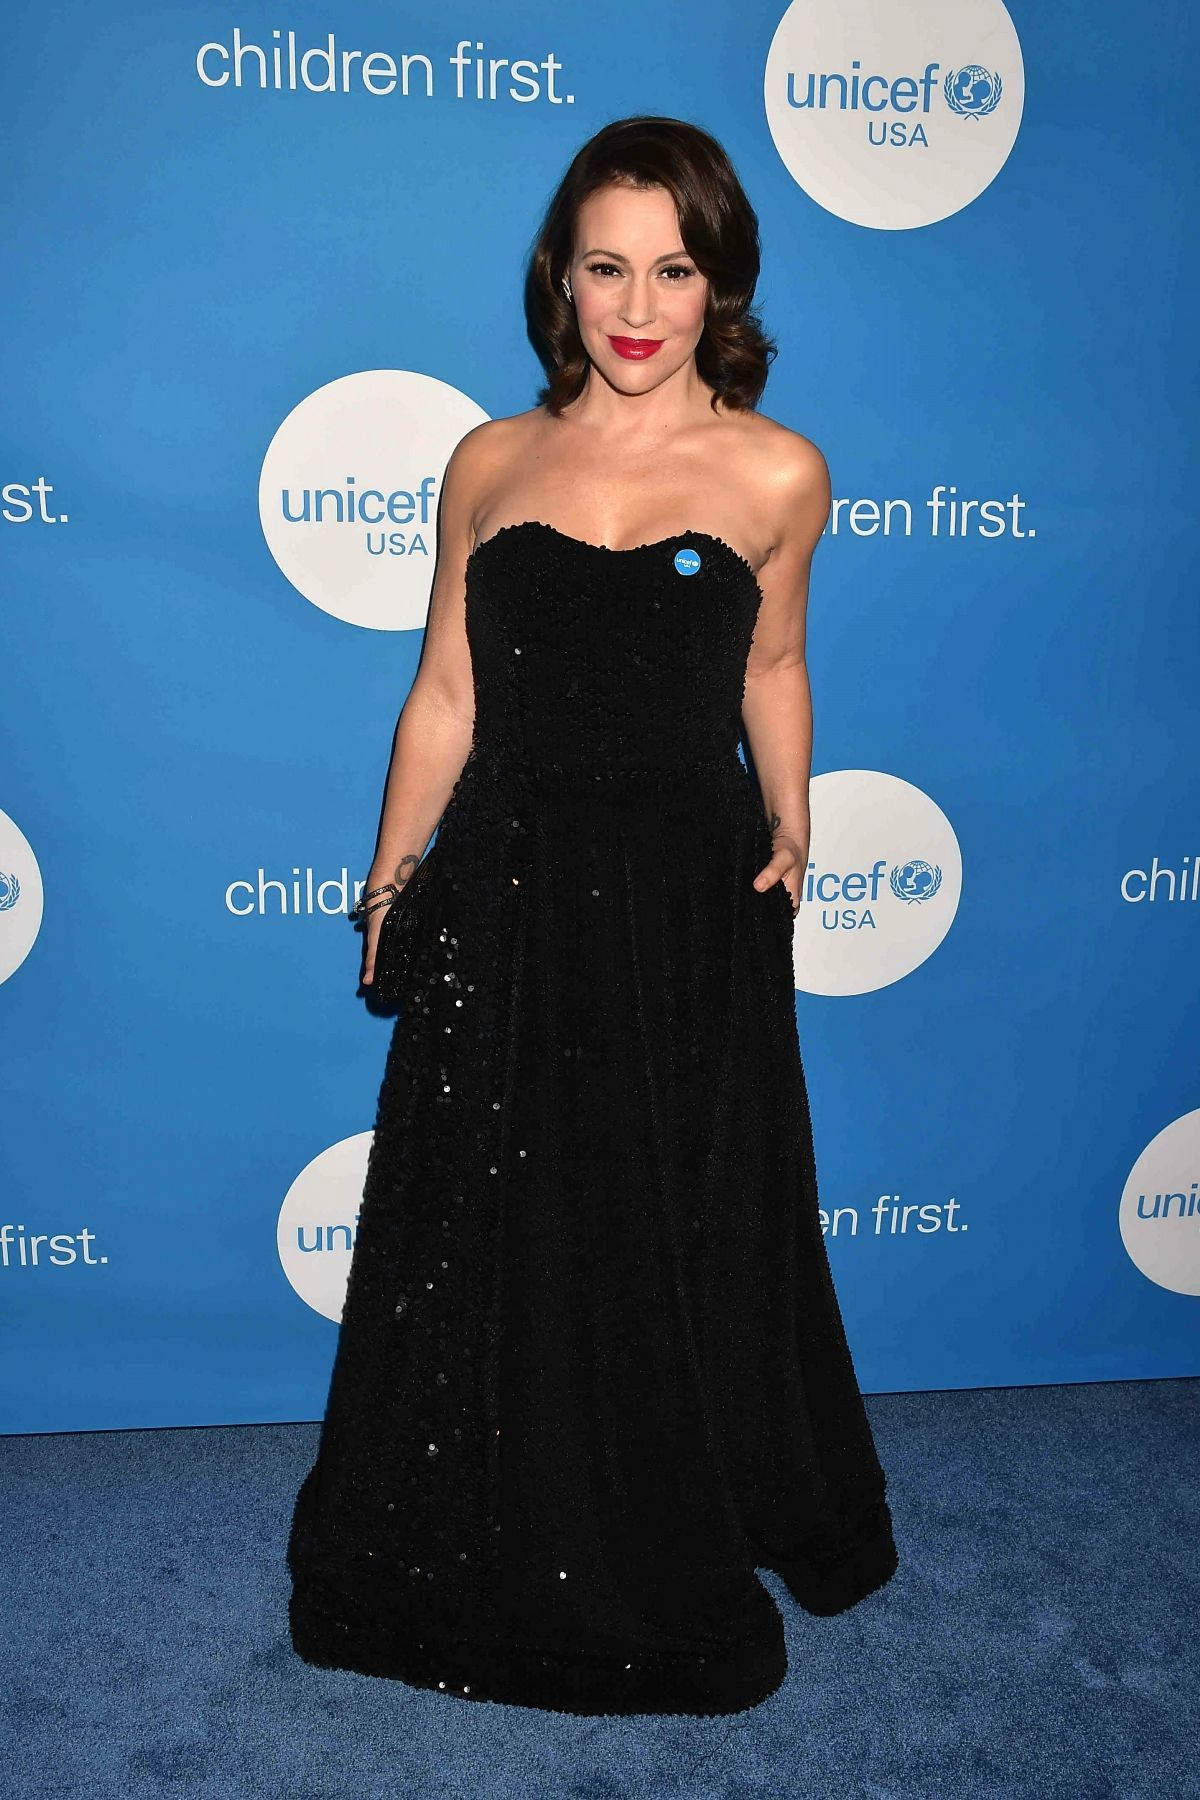 Alyssa Milano attends the Unicef Ball in Los Angeles on April 14, 2018.